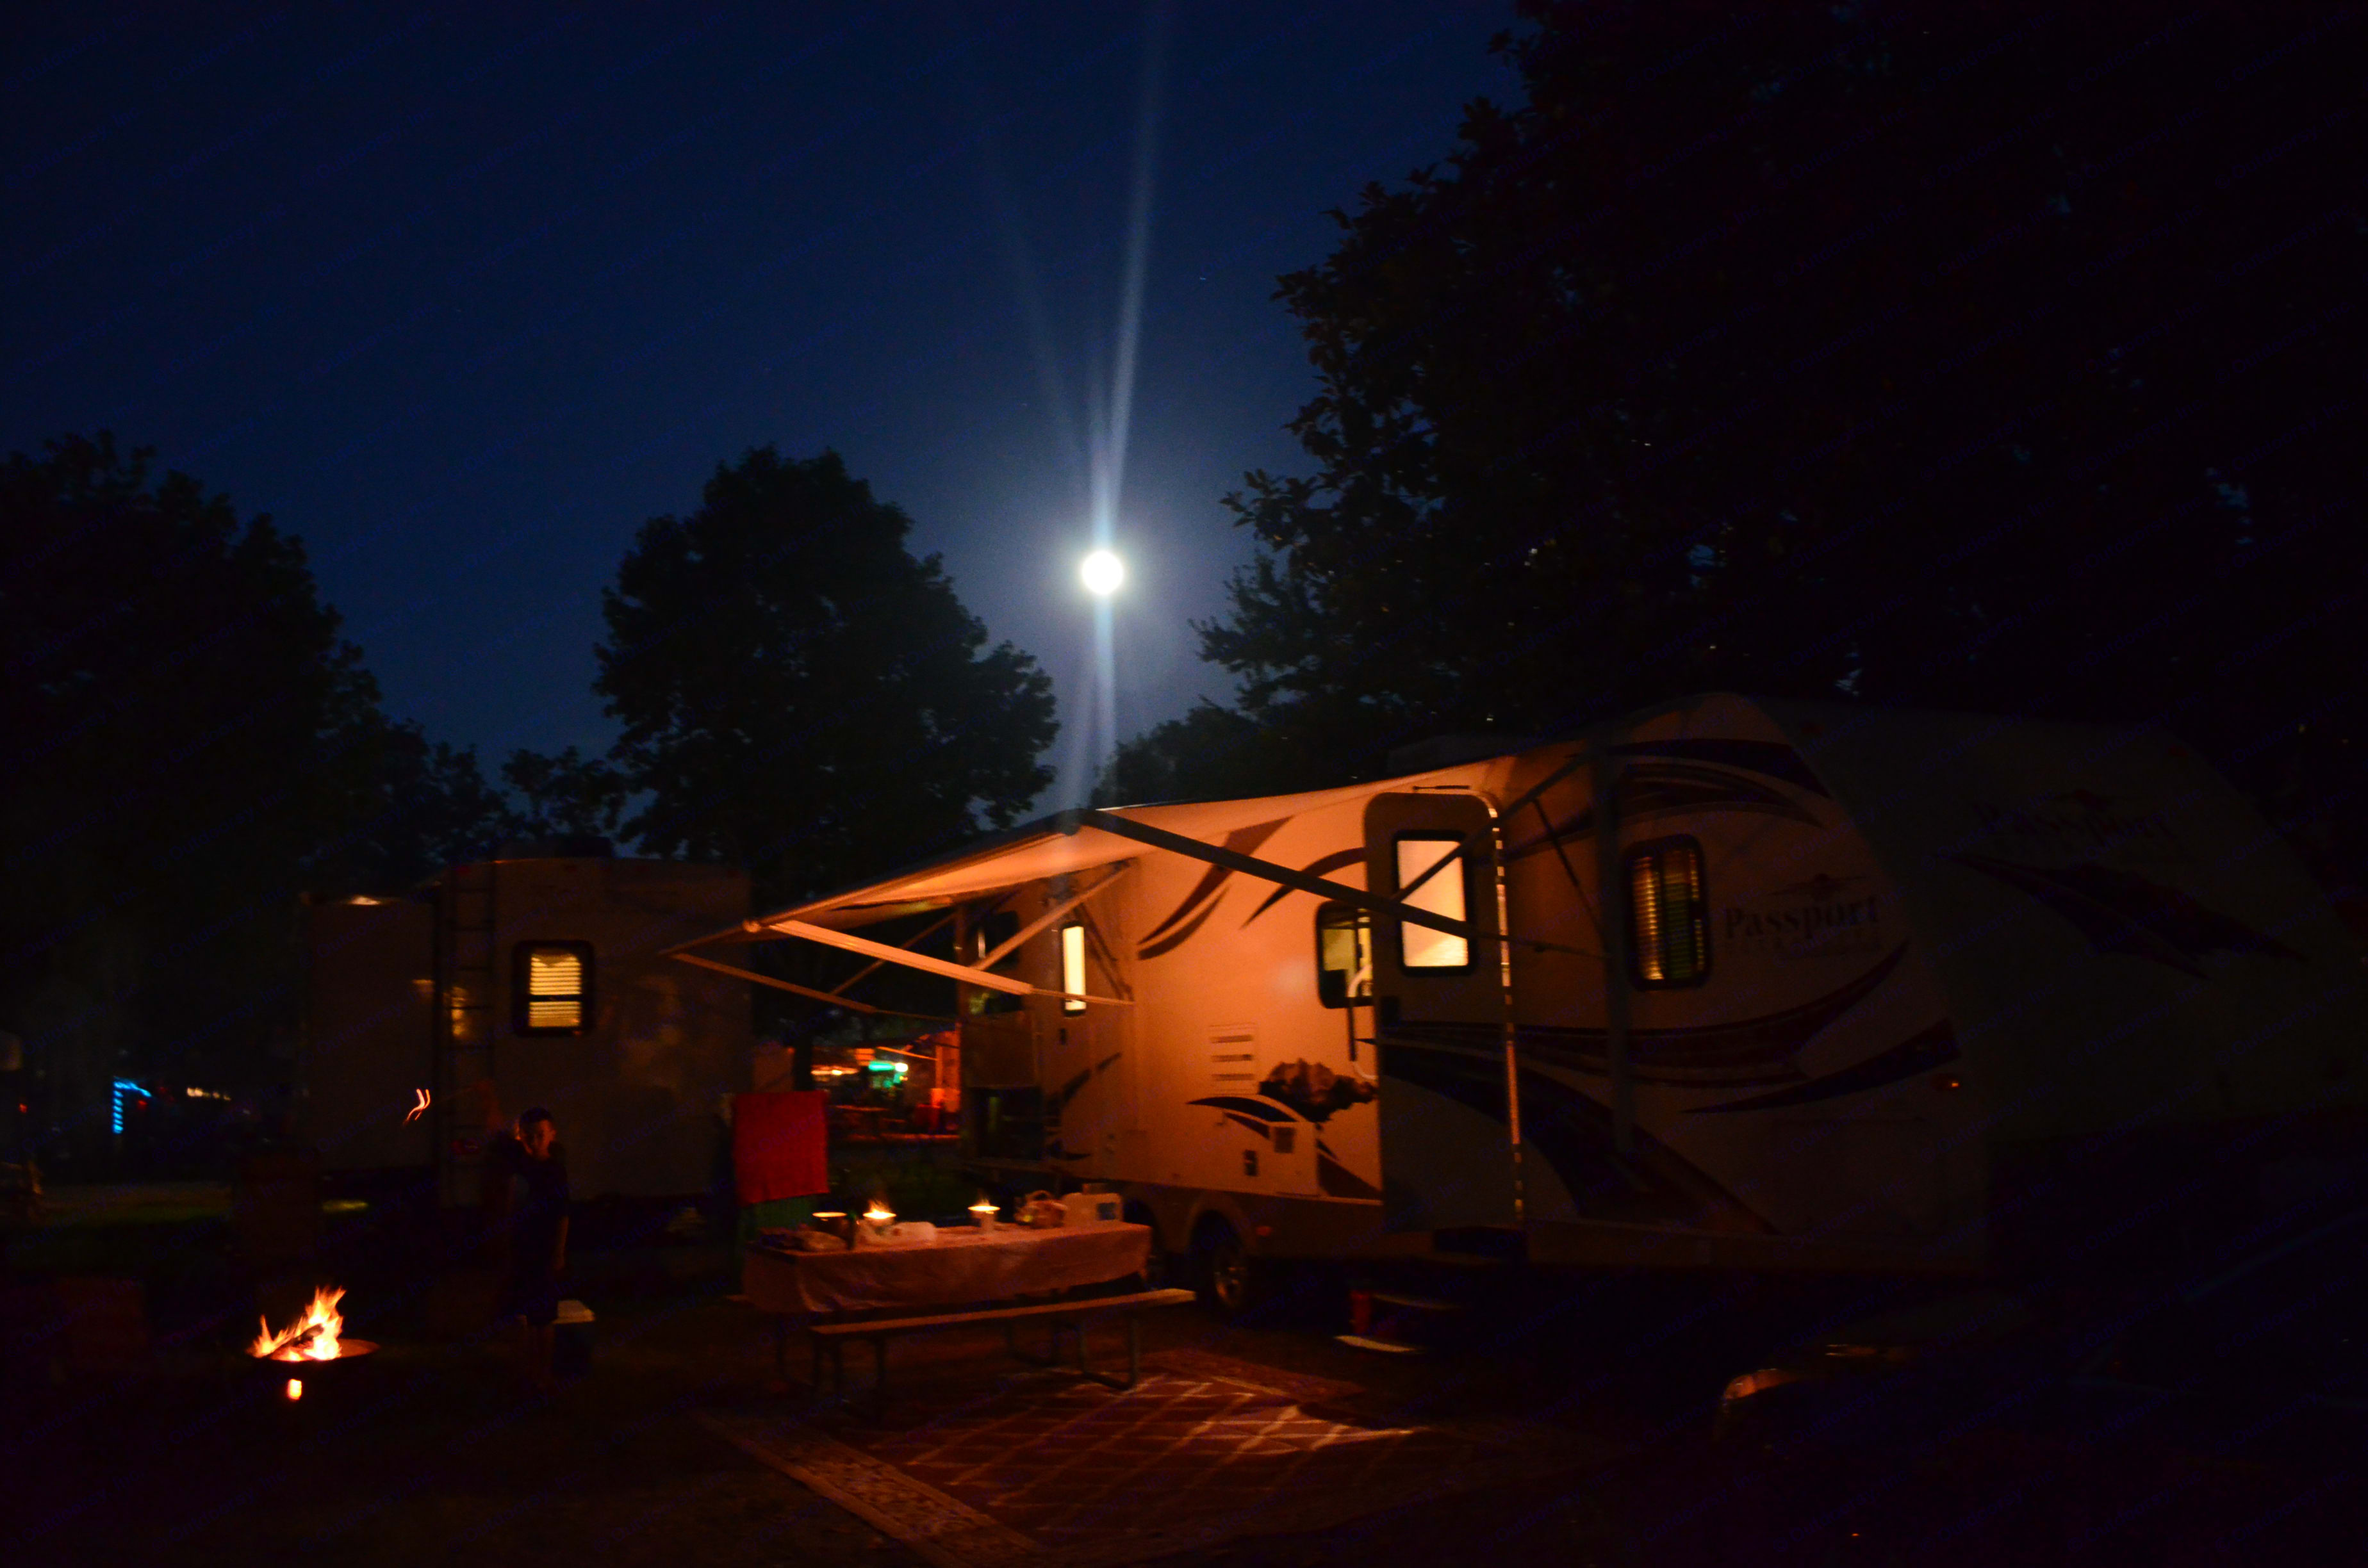 The trailer lit up with the main house light under a super moon.. Keystone Passport 2011